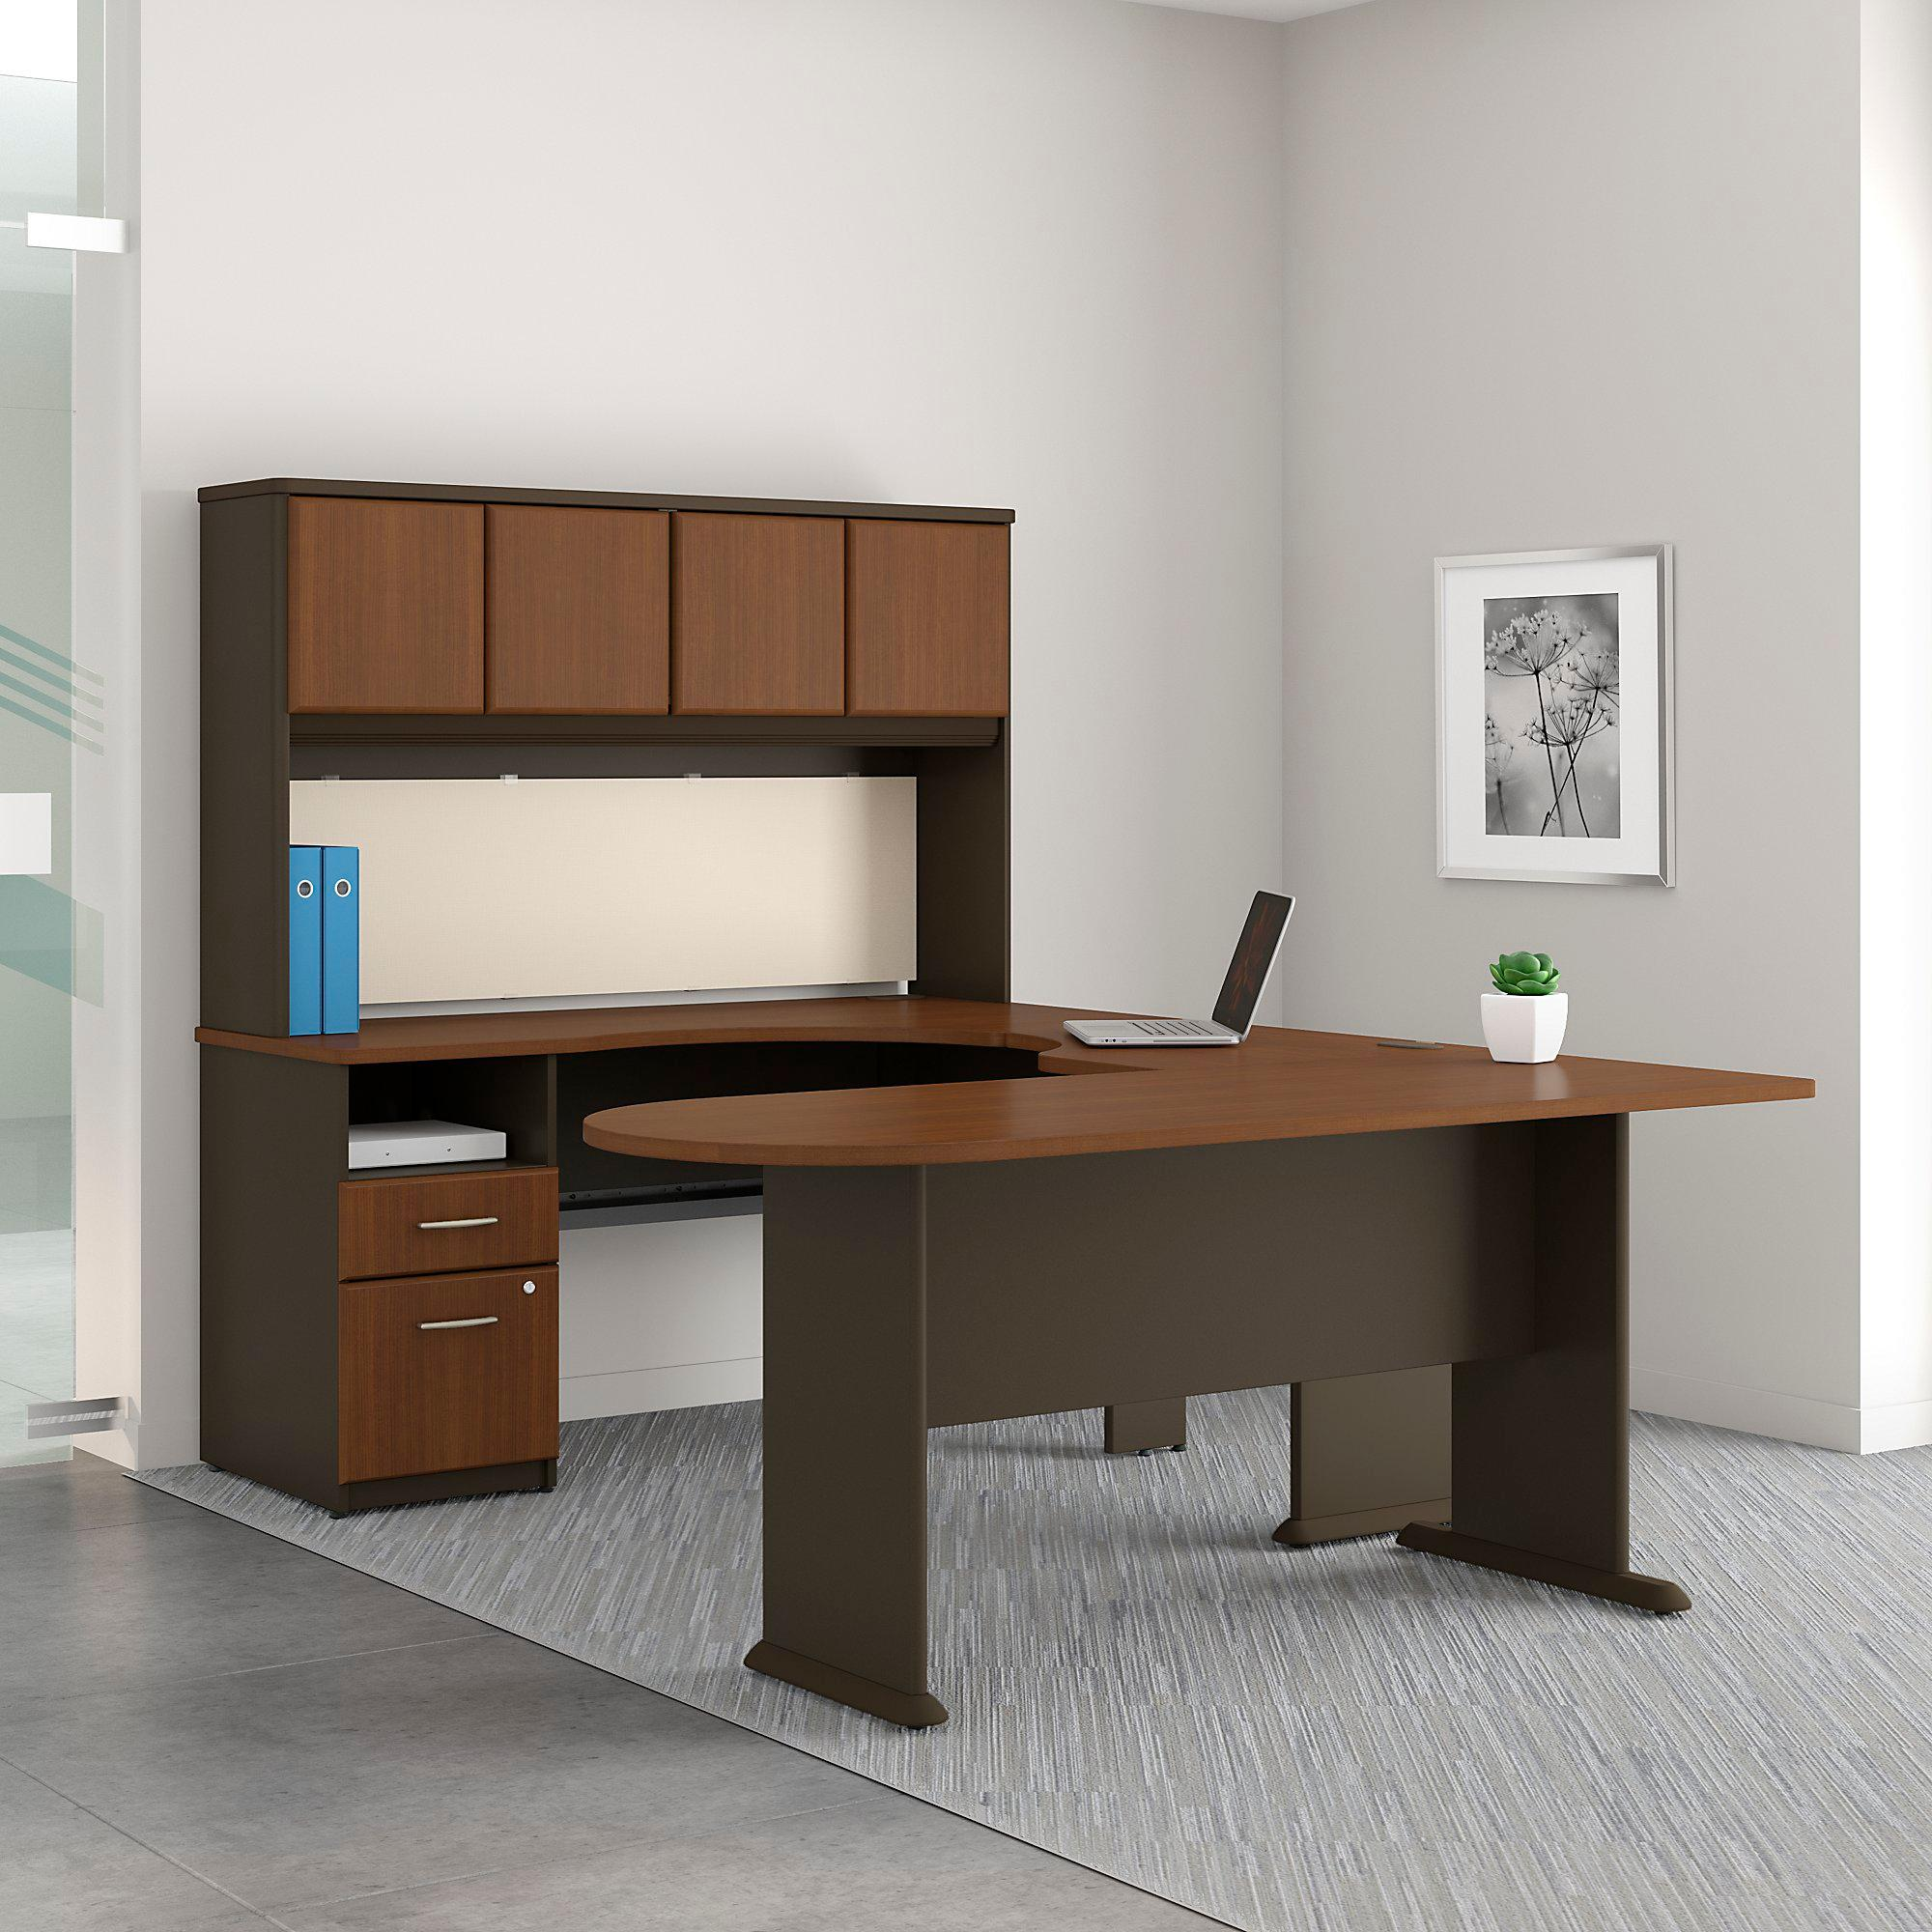 business office in inspirational corner series new furniture desk a amazon bush of natural